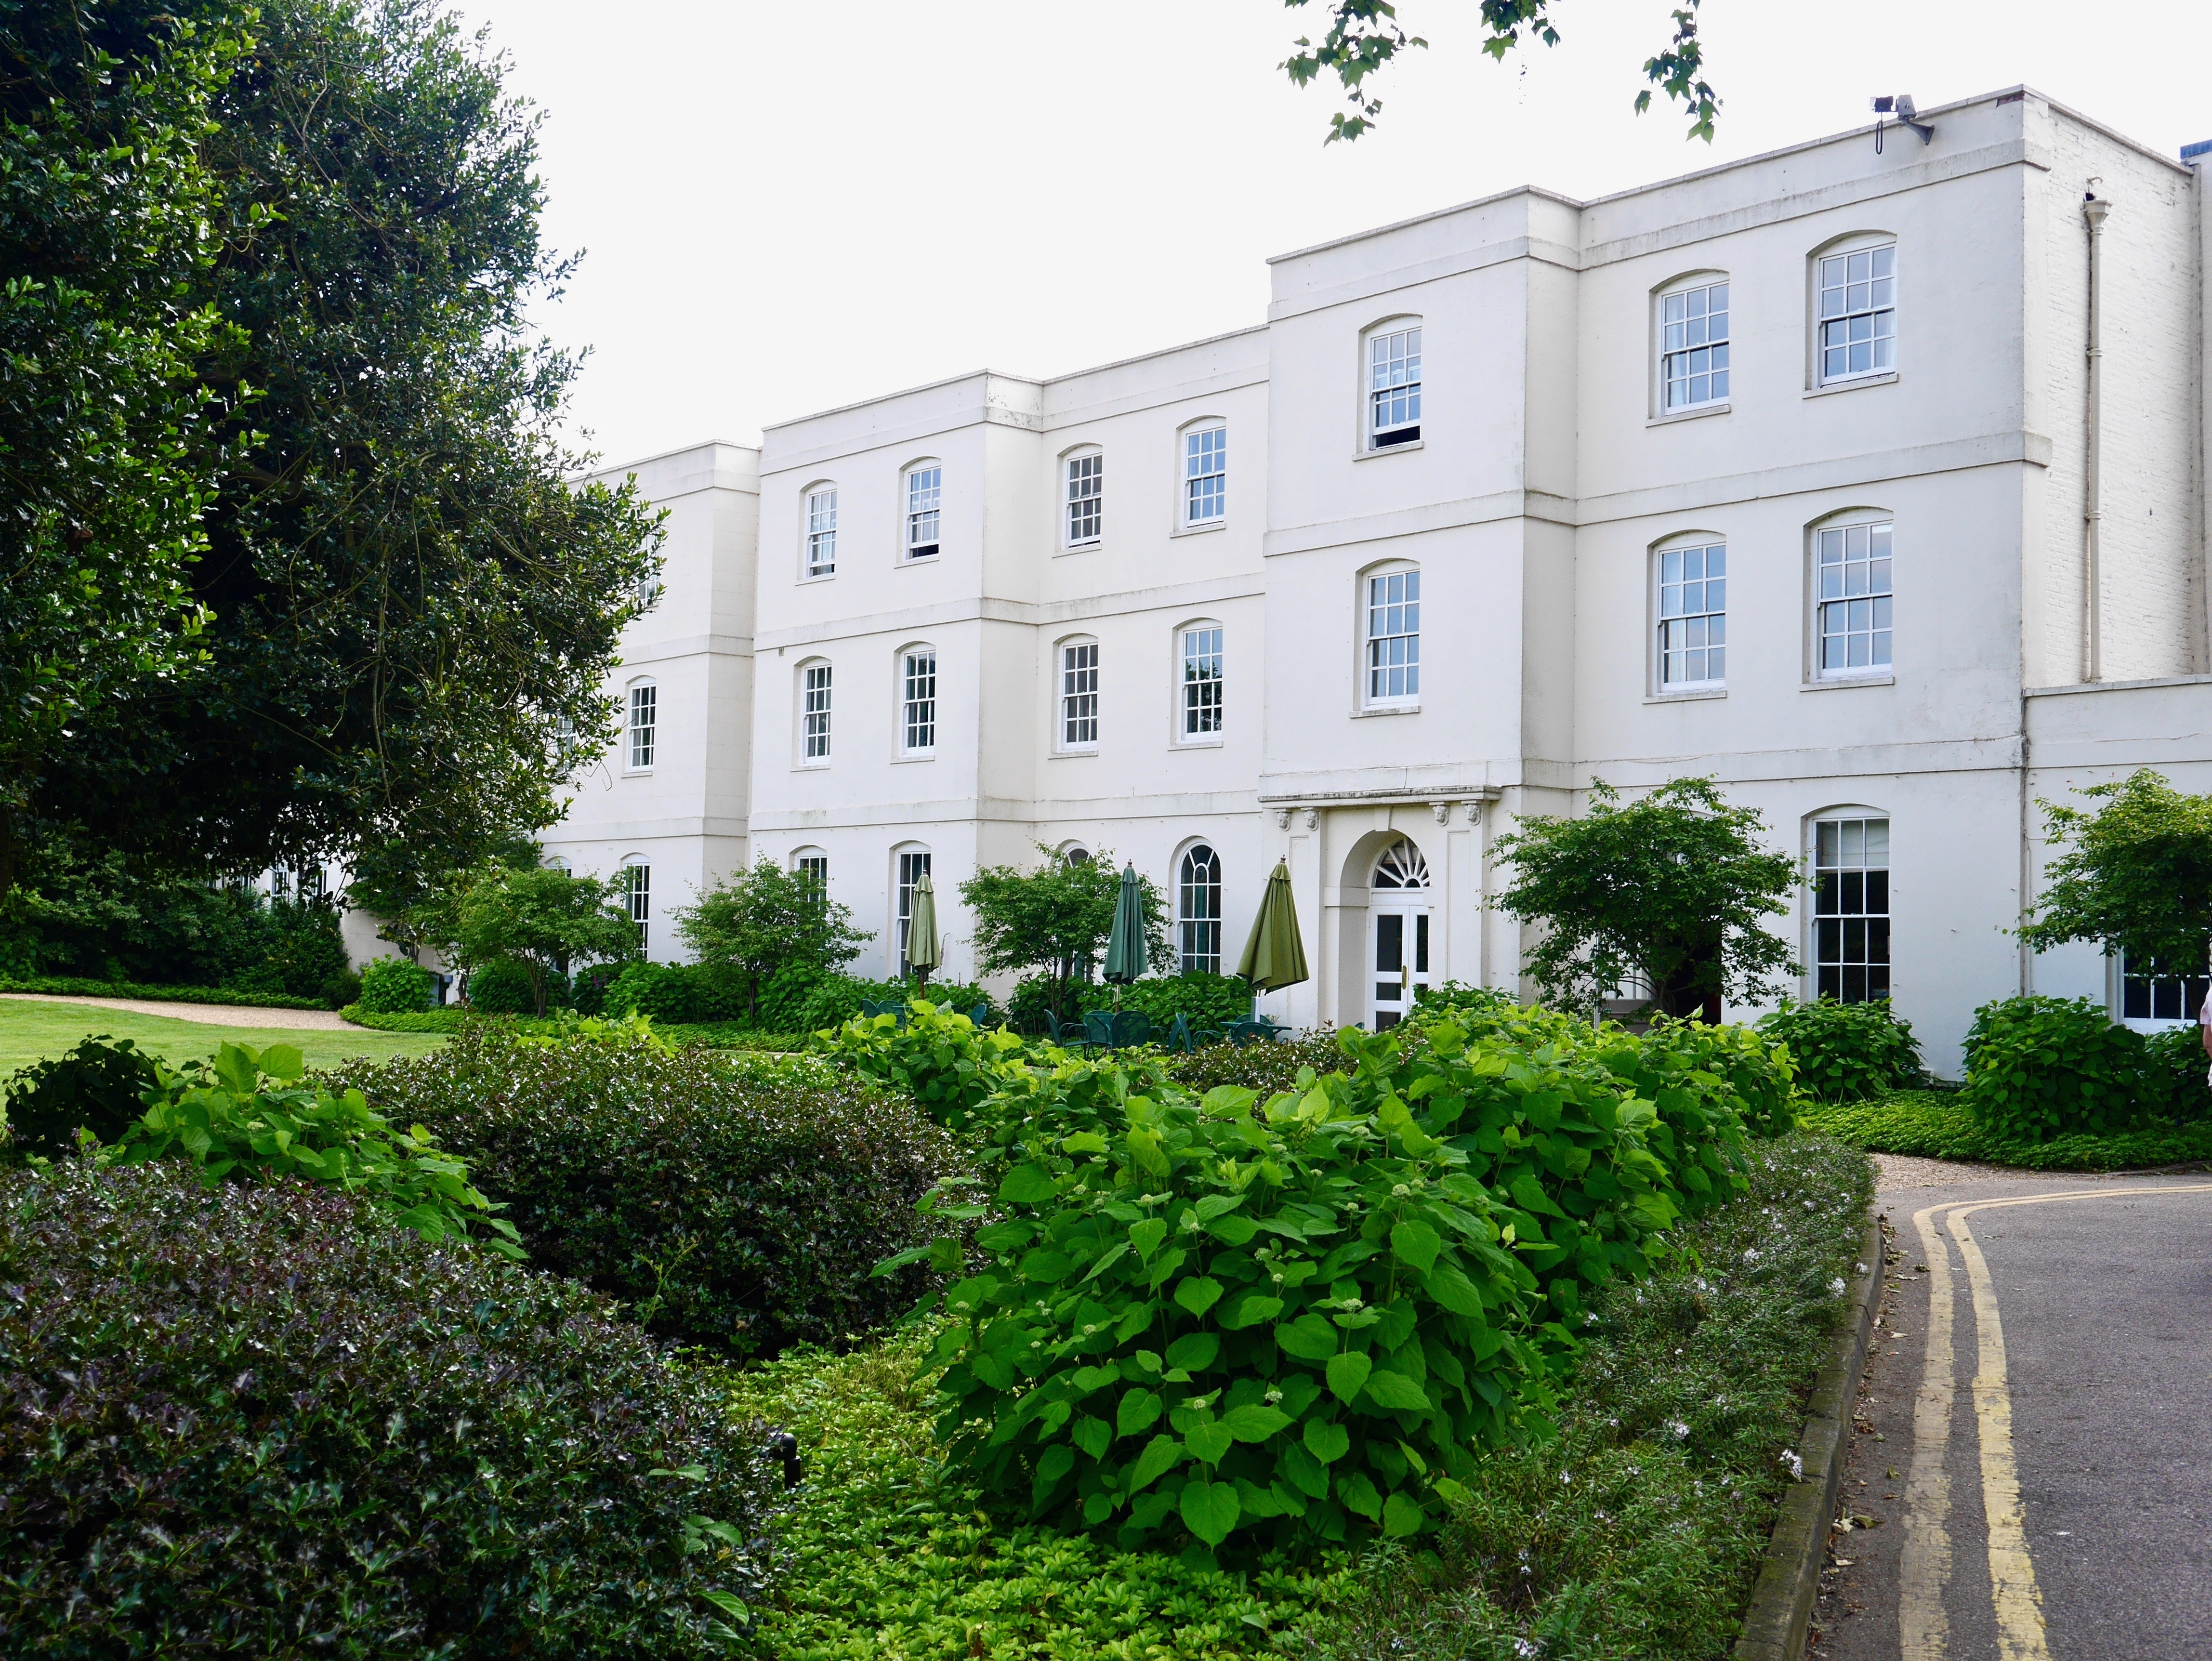 Sopwell House: St Albans Luxury Retreat | The Curious Pixie for The Garden House Restaurant St Albans